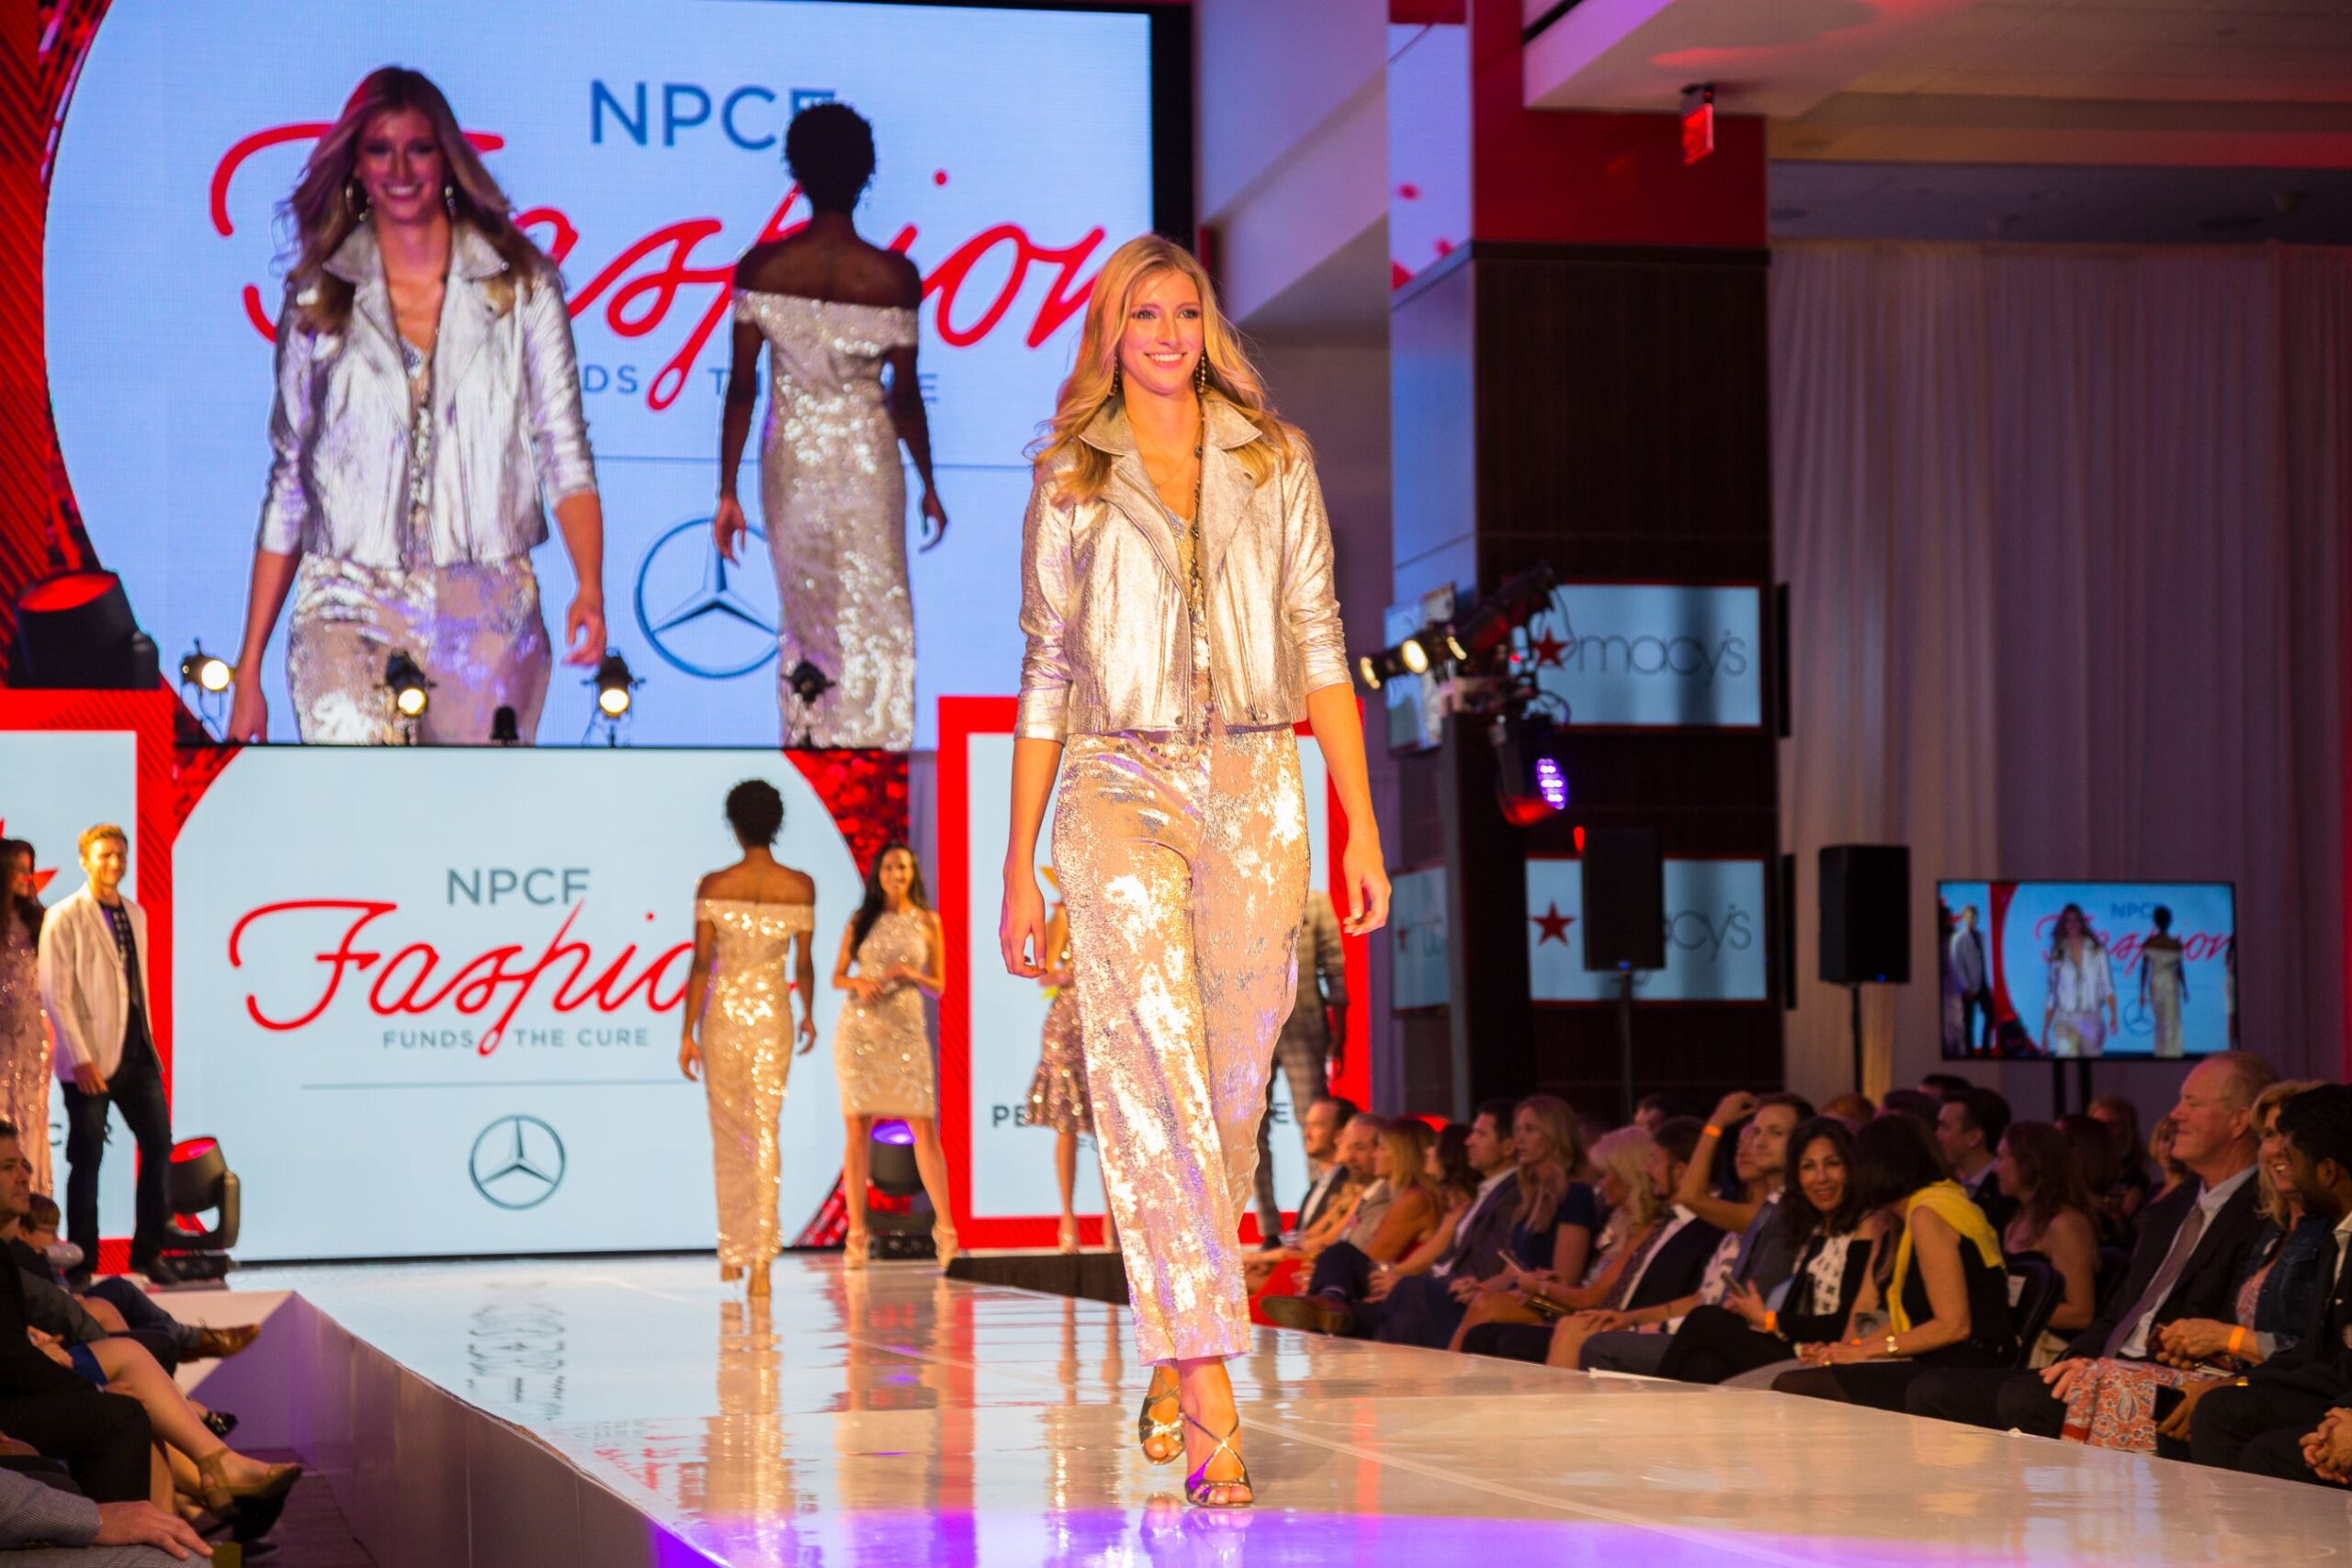 17th Annual Fashion Funds the Cure Celebrates Children Battling Cancer in Tampa Bay